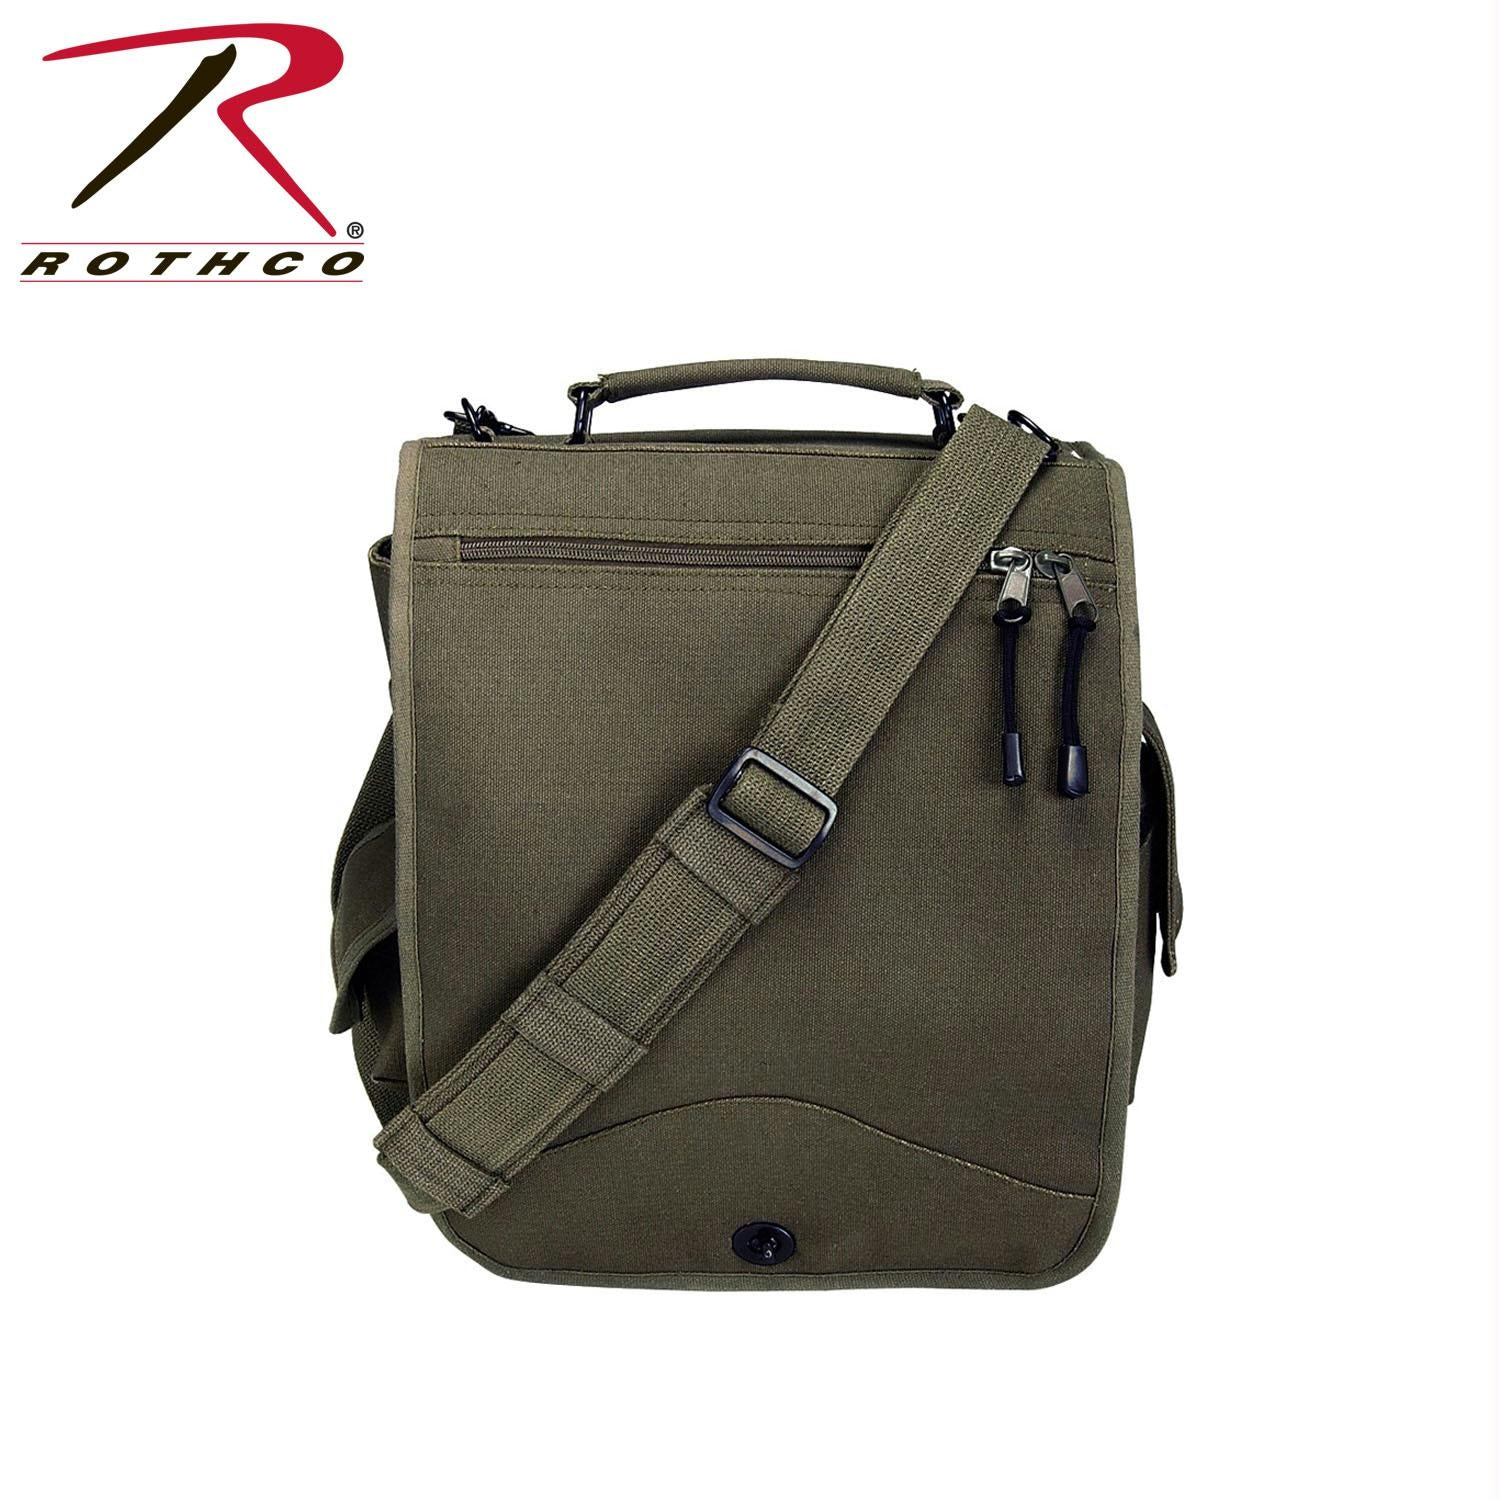 Rothco Canvas M-51 Engineers Field Bag - Olive Drab